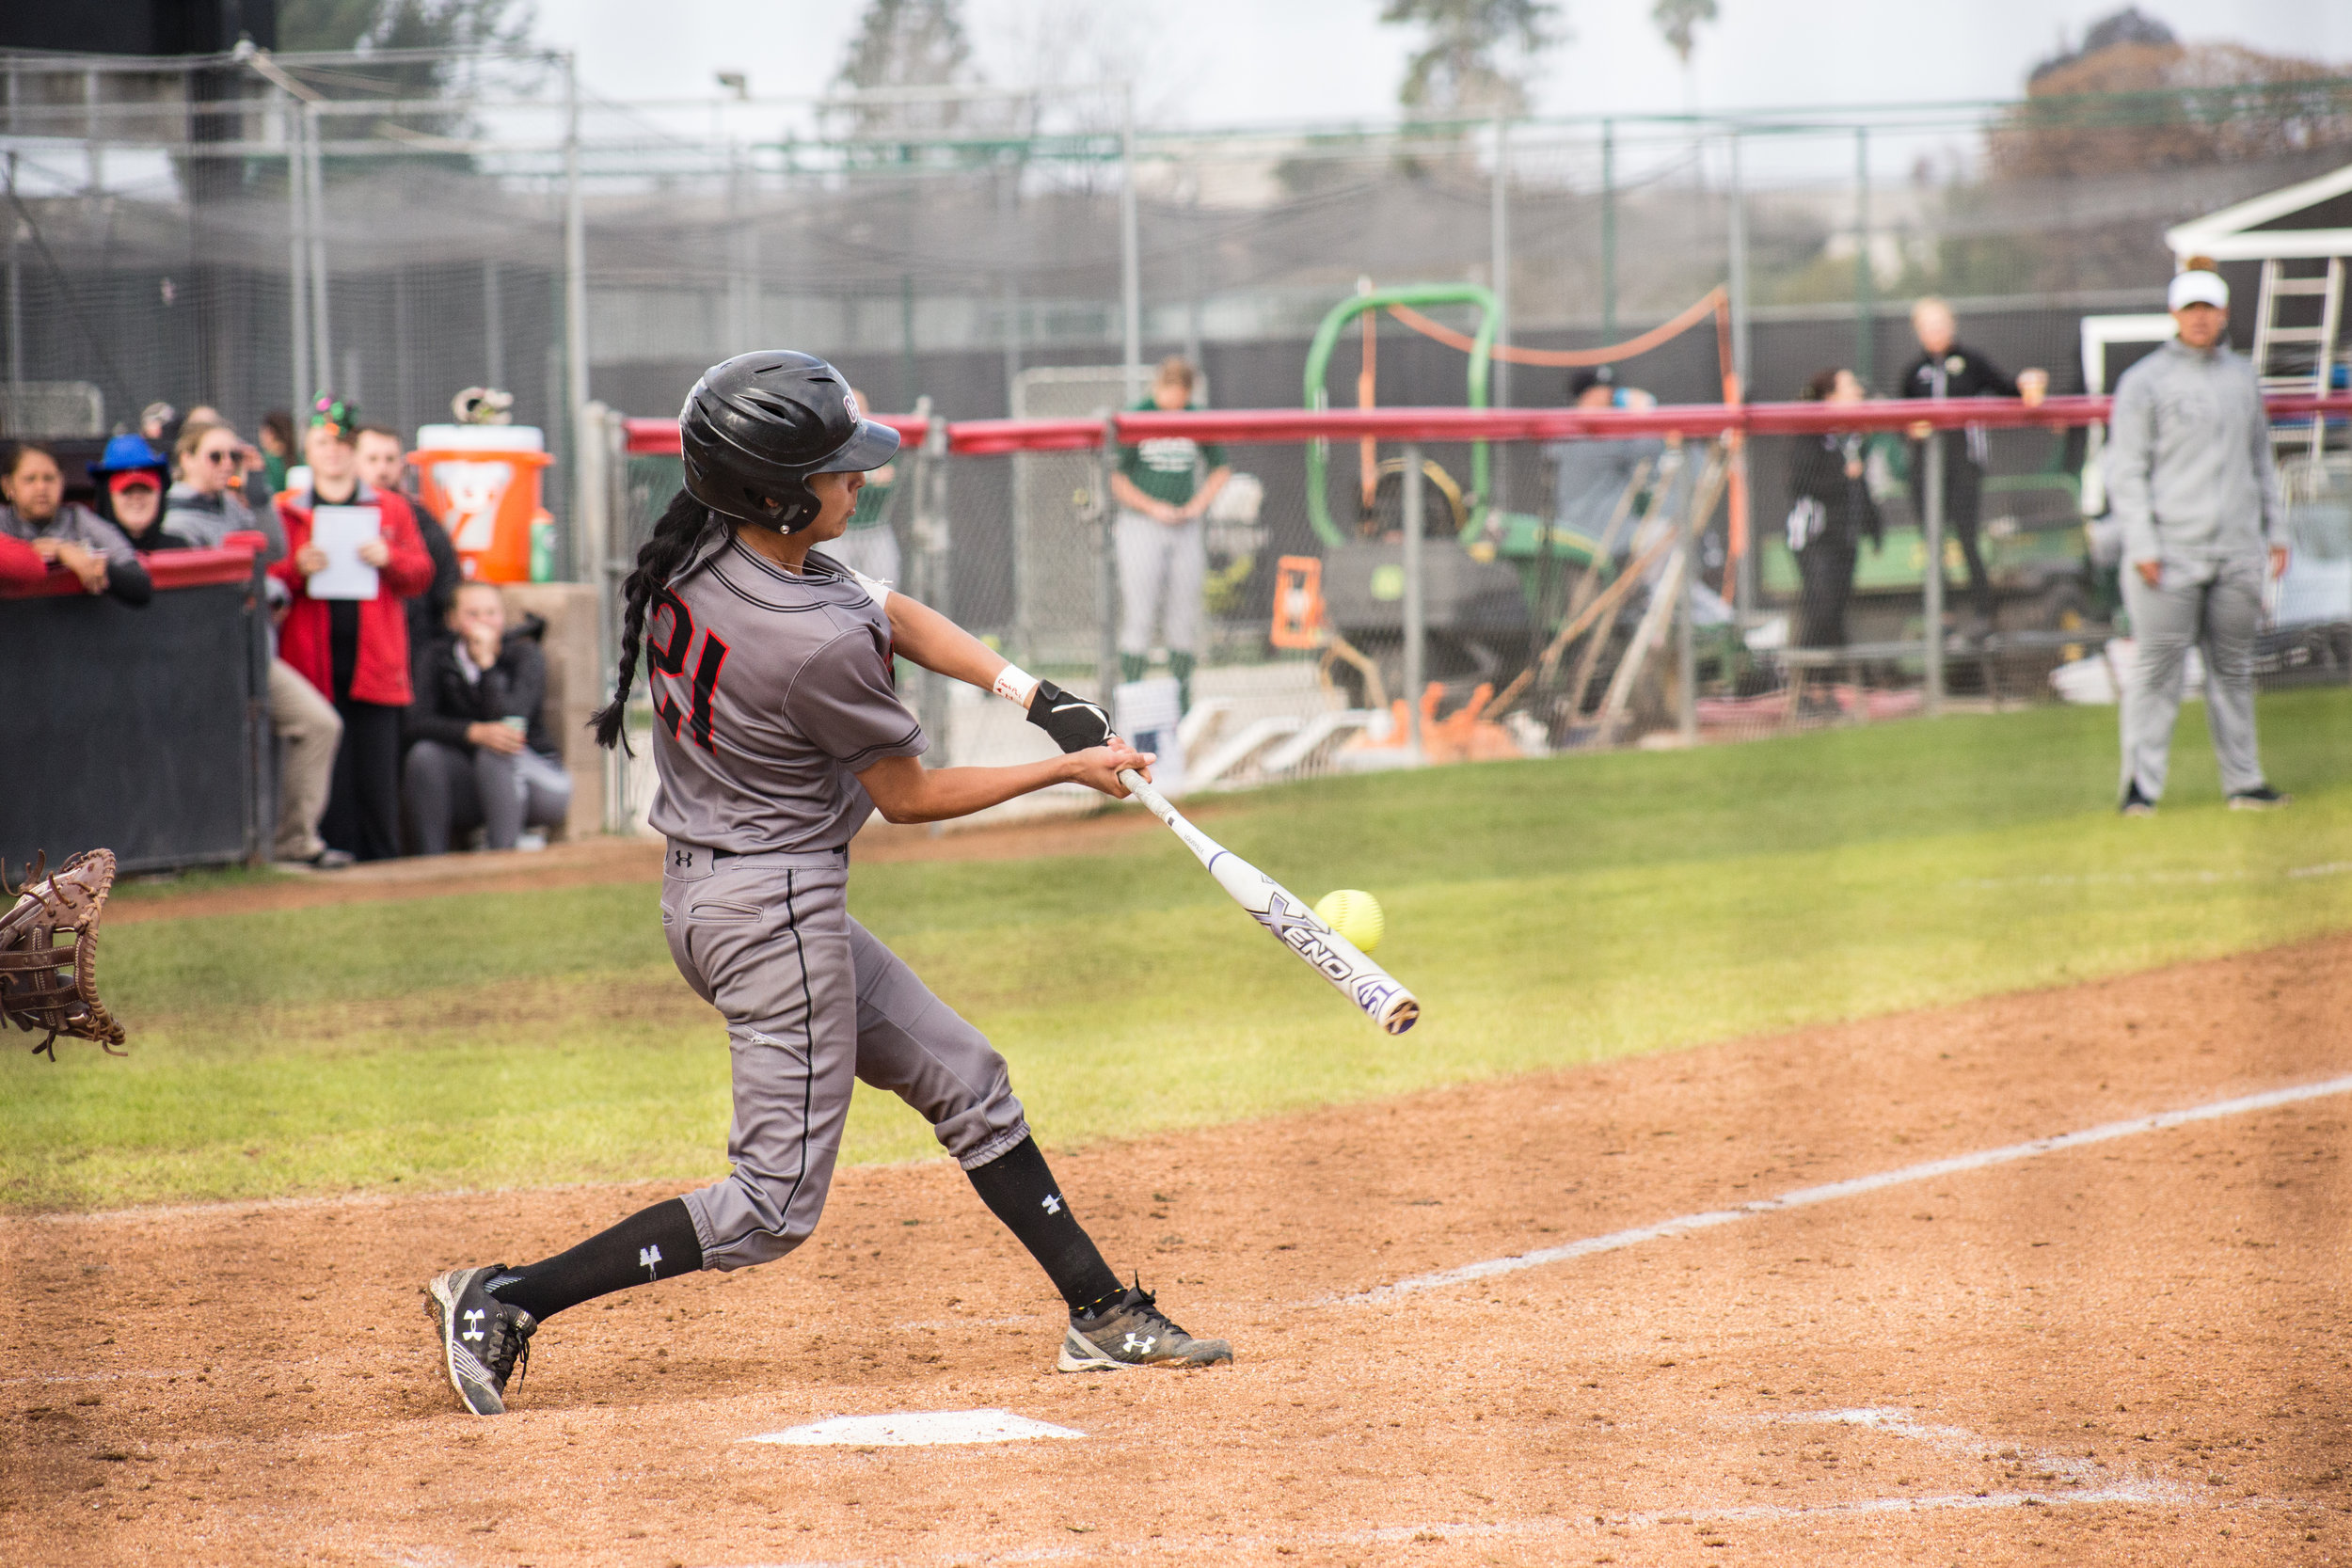 2018_03_24 - Softball vs UoP (max reso)-11.jpg